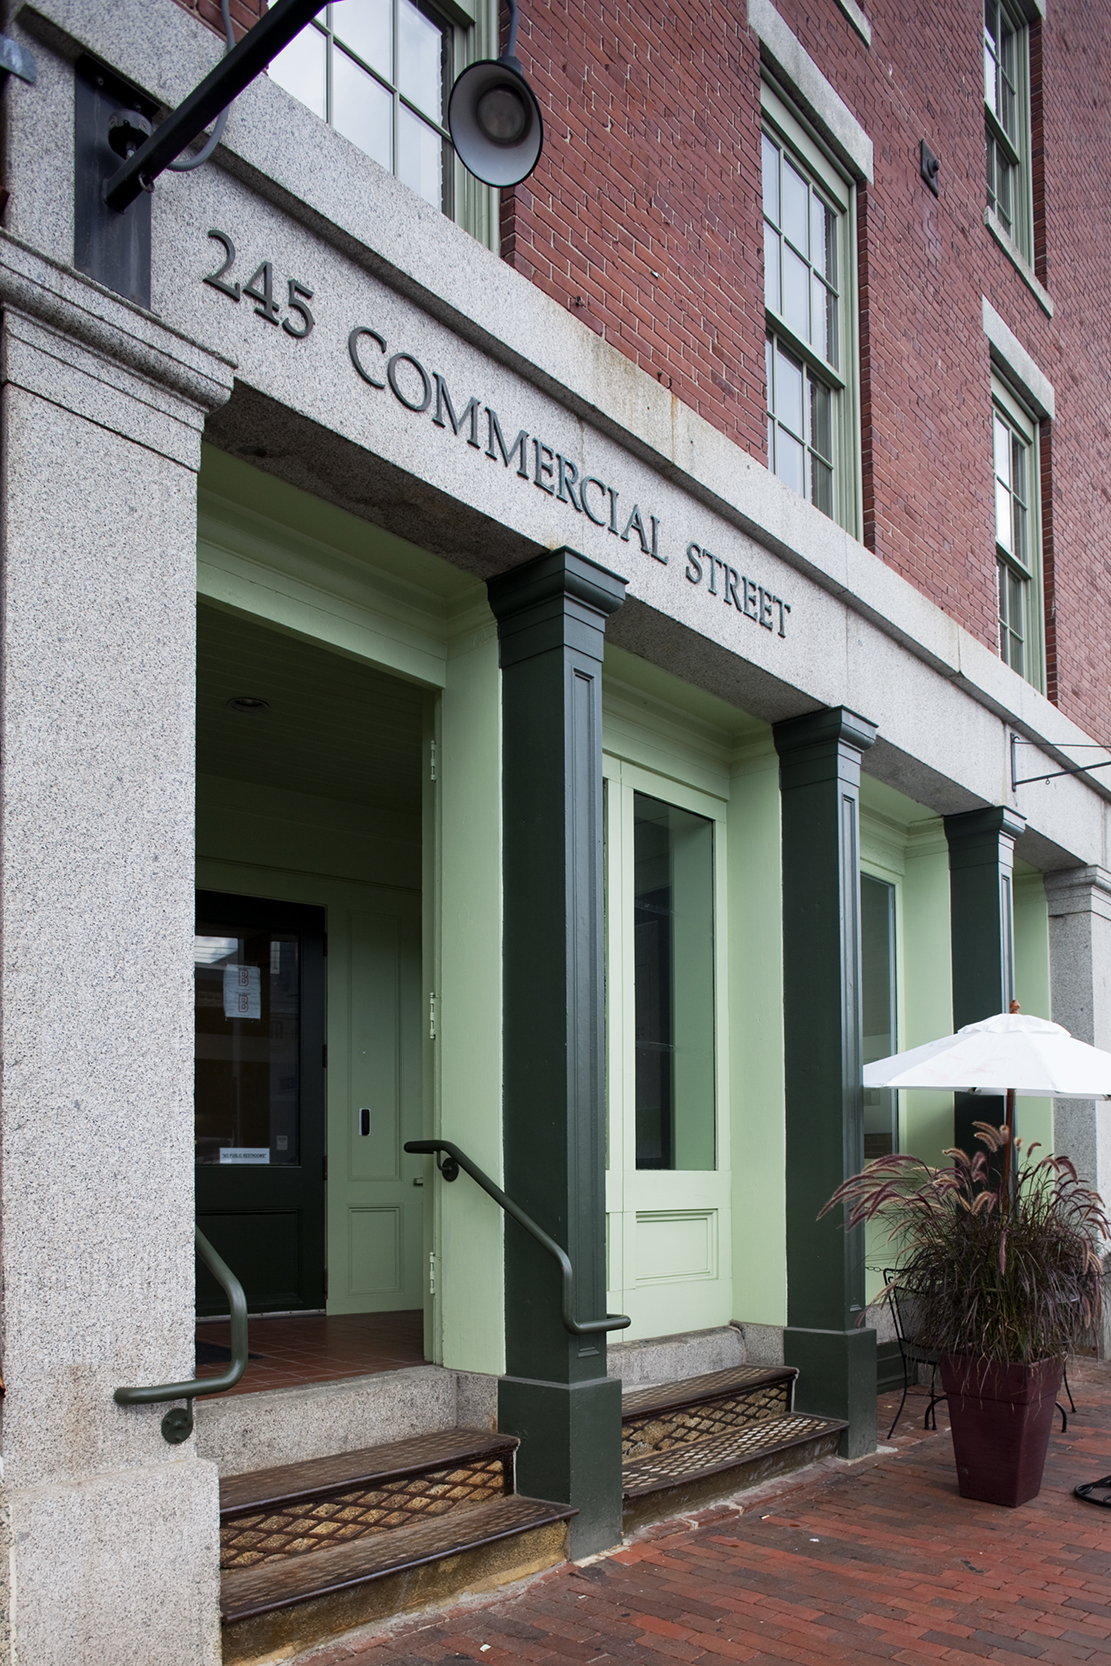 The front of the building received a light-touch renovation, with a new color scheme approved by the Historic Preservation Commission.